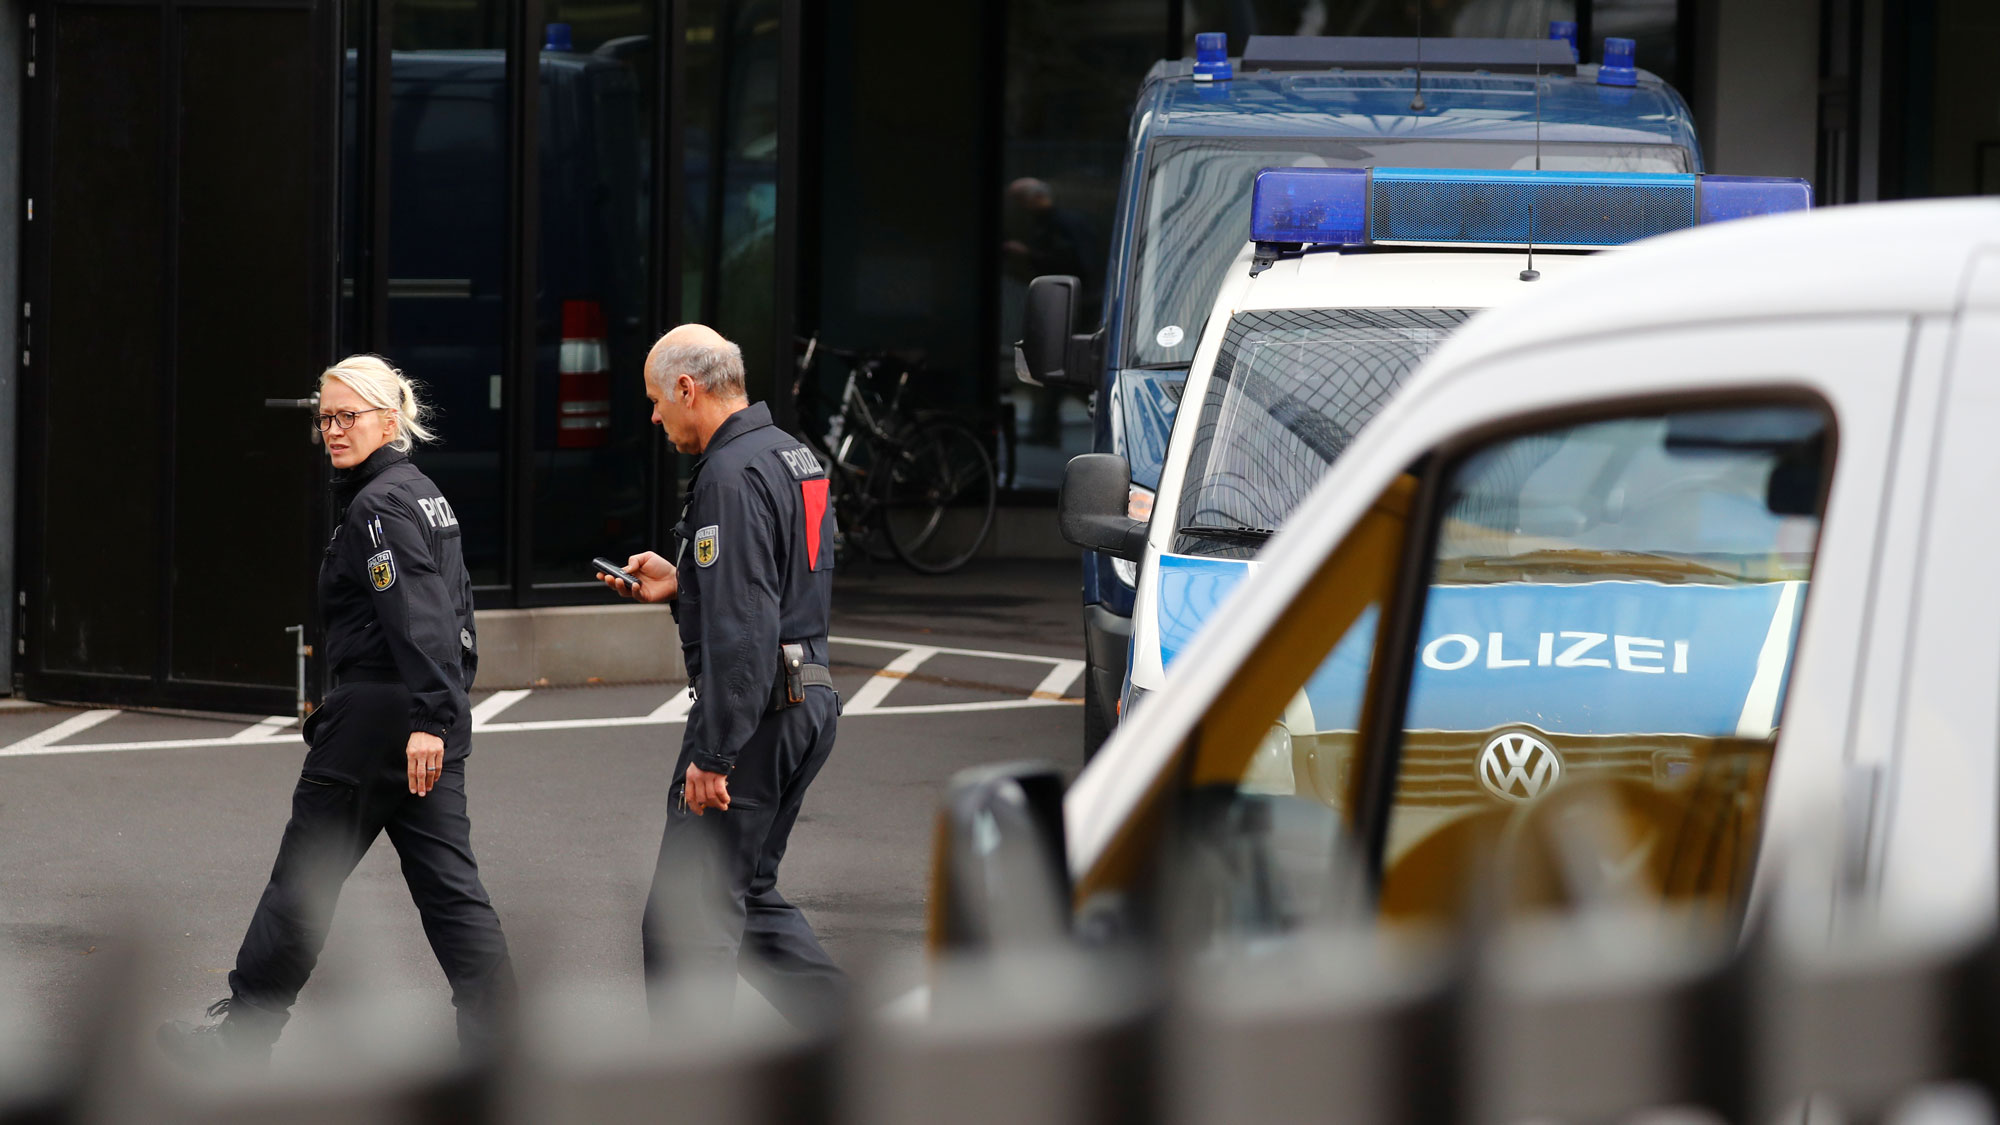 Two police officers are seen walking past police vehicles in front of Deutsche Bank headquarters in Frankfurt, Germany, Nov. 29, 2018.